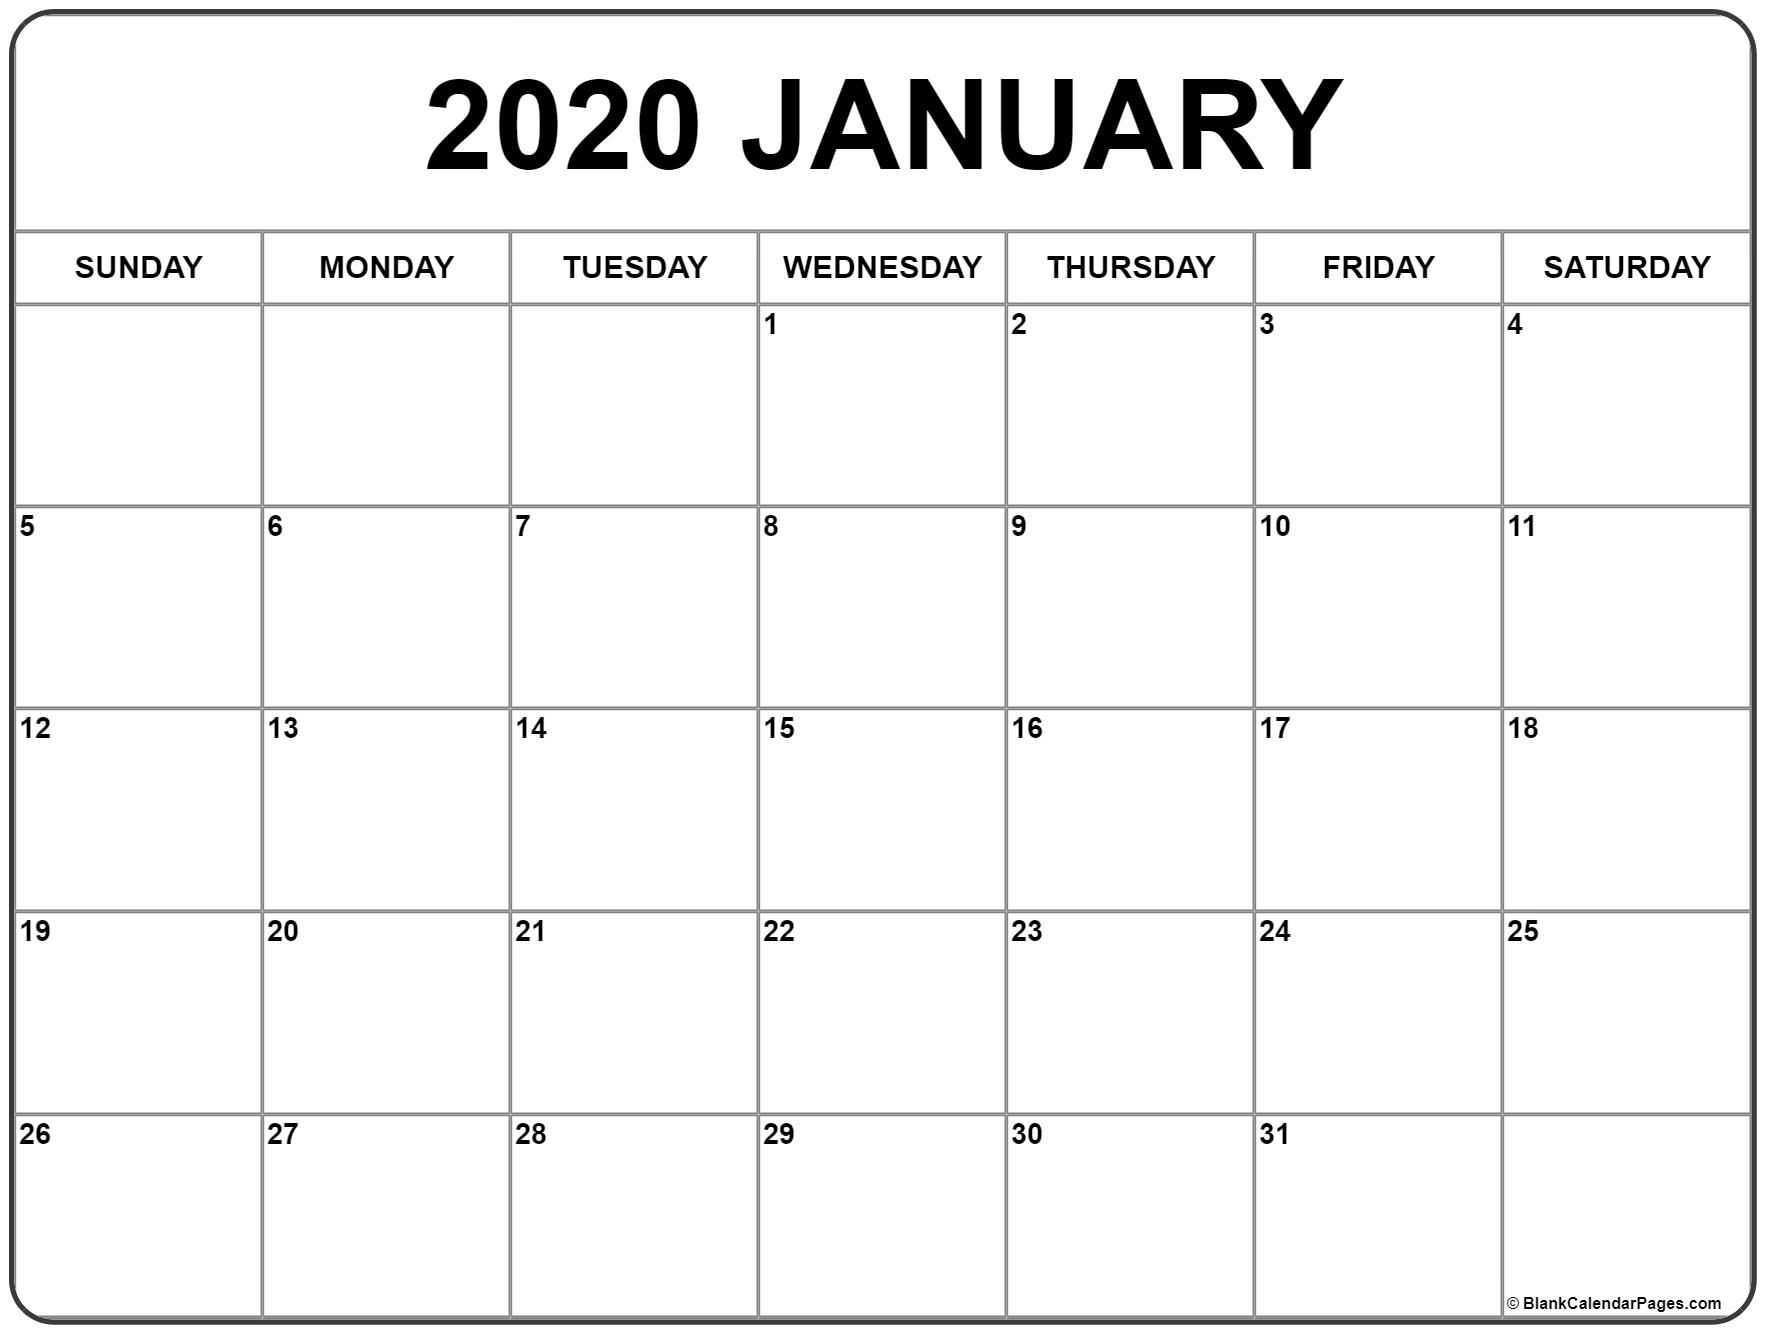 January 2020 Calendar | Free Printable Monthly Calendars pertaining to Small Monthly Calendar Printable 2020 October